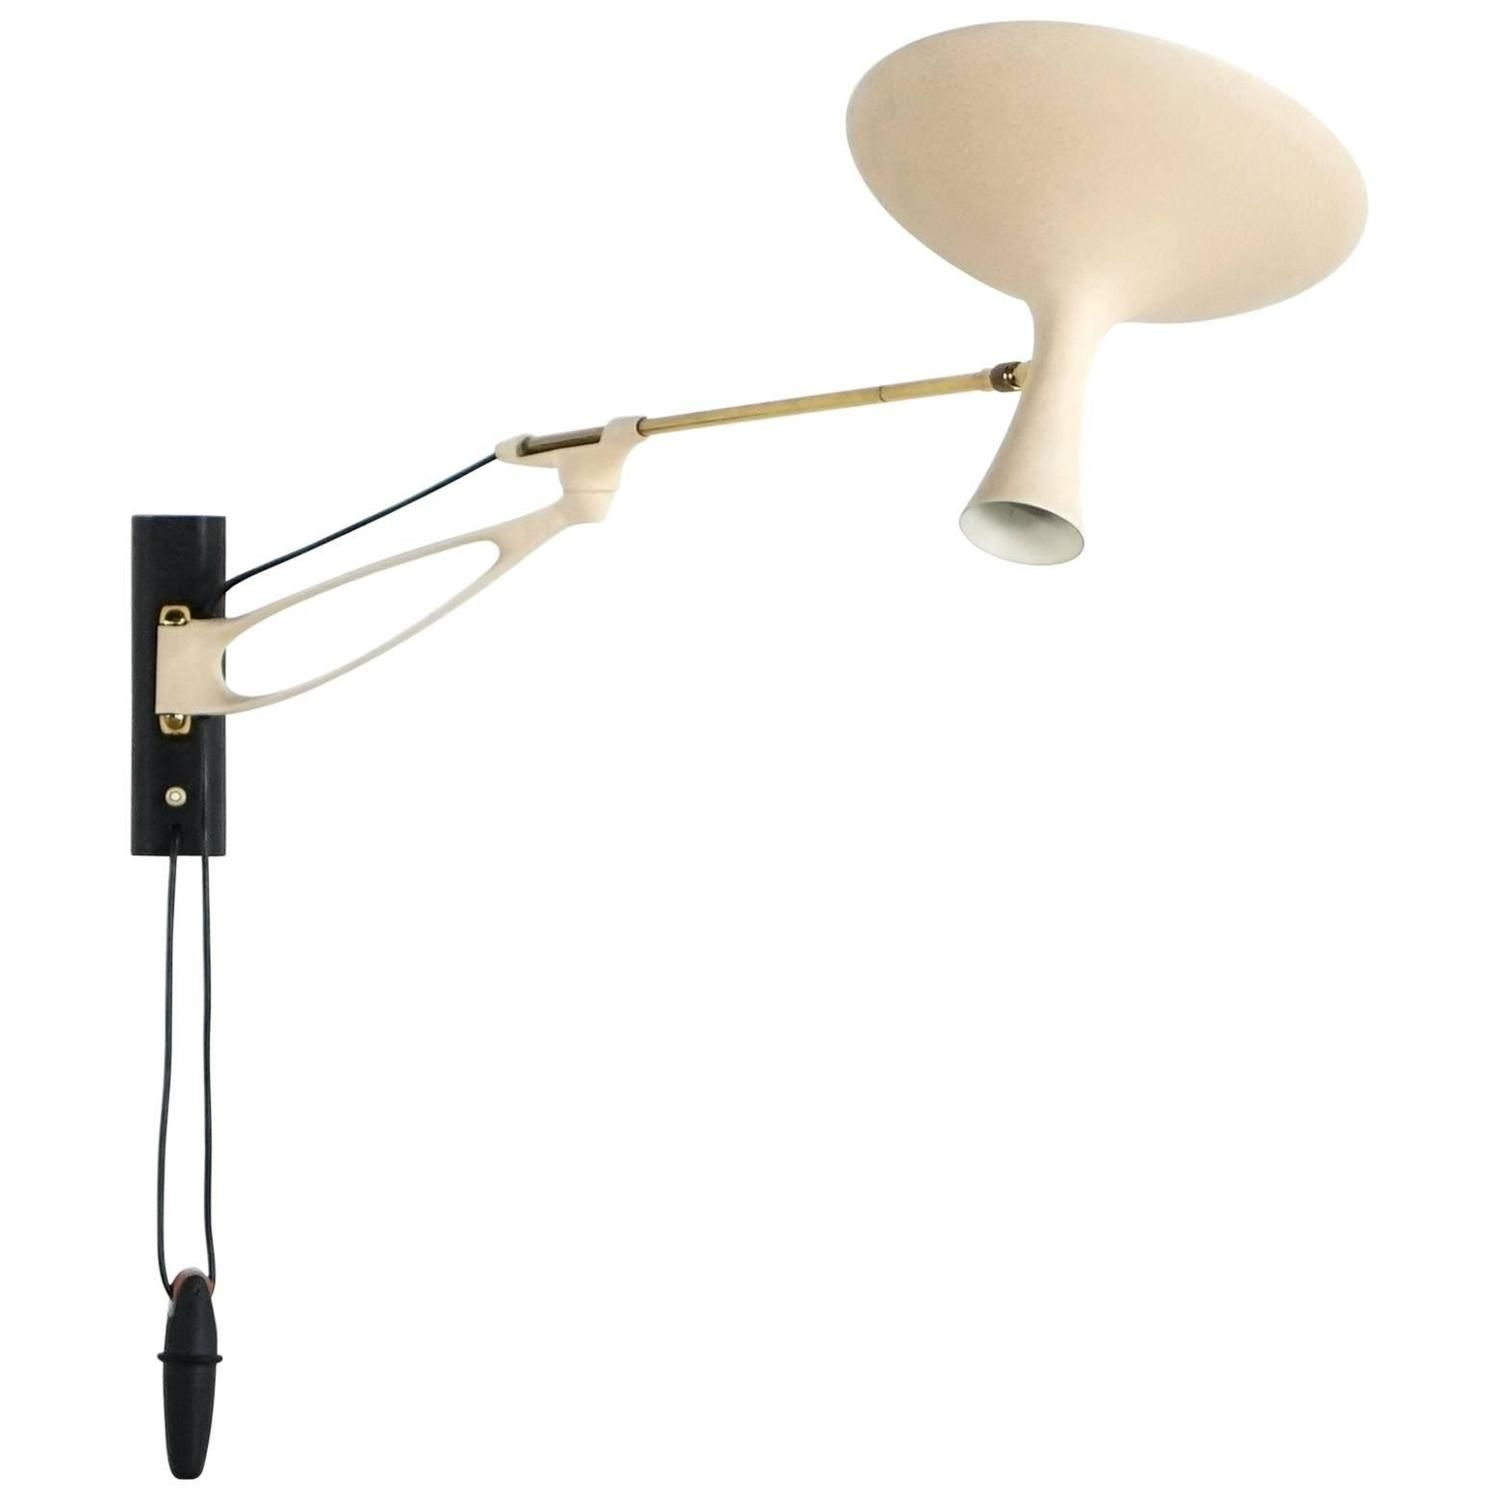 Leuchten Bilder Adjustable Wall Lamp \